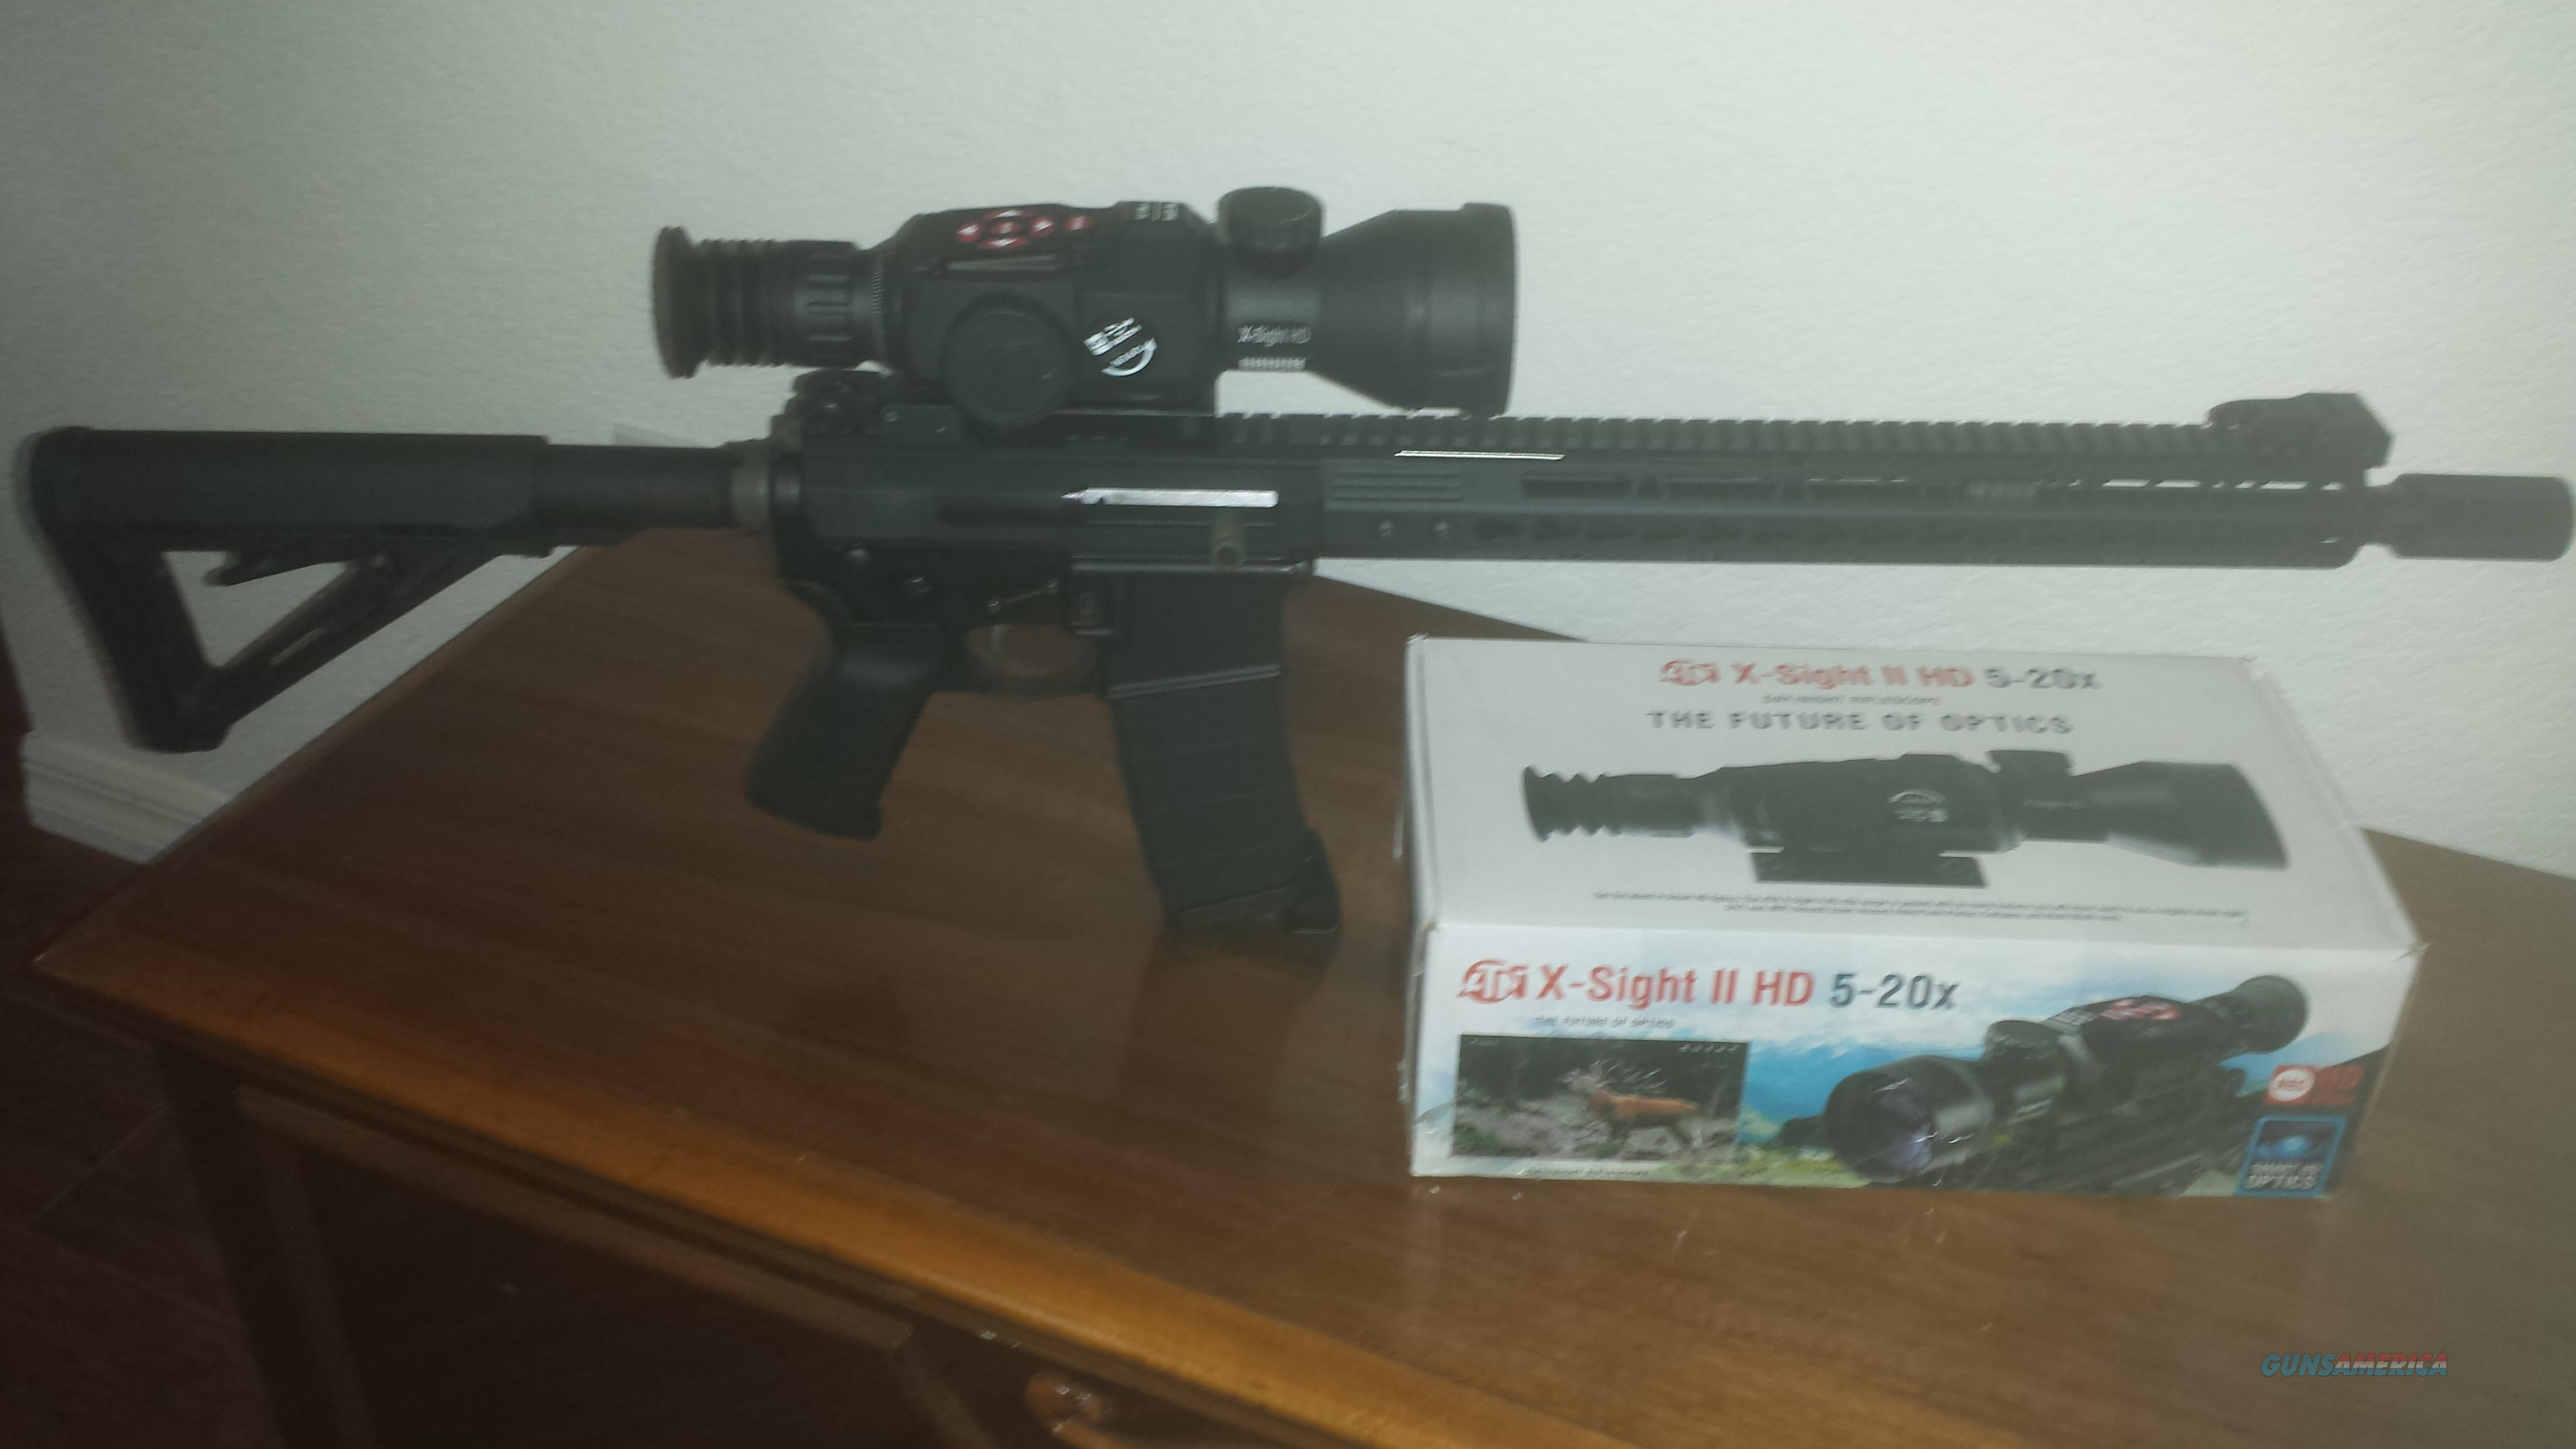 AR15 CUSTOM BUILT SIDE CHARGING RIFLE! .223 NEW NEVER FIRED  Guns > Rifles > AR-15 Rifles - Small Manufacturers > Complete Rifle